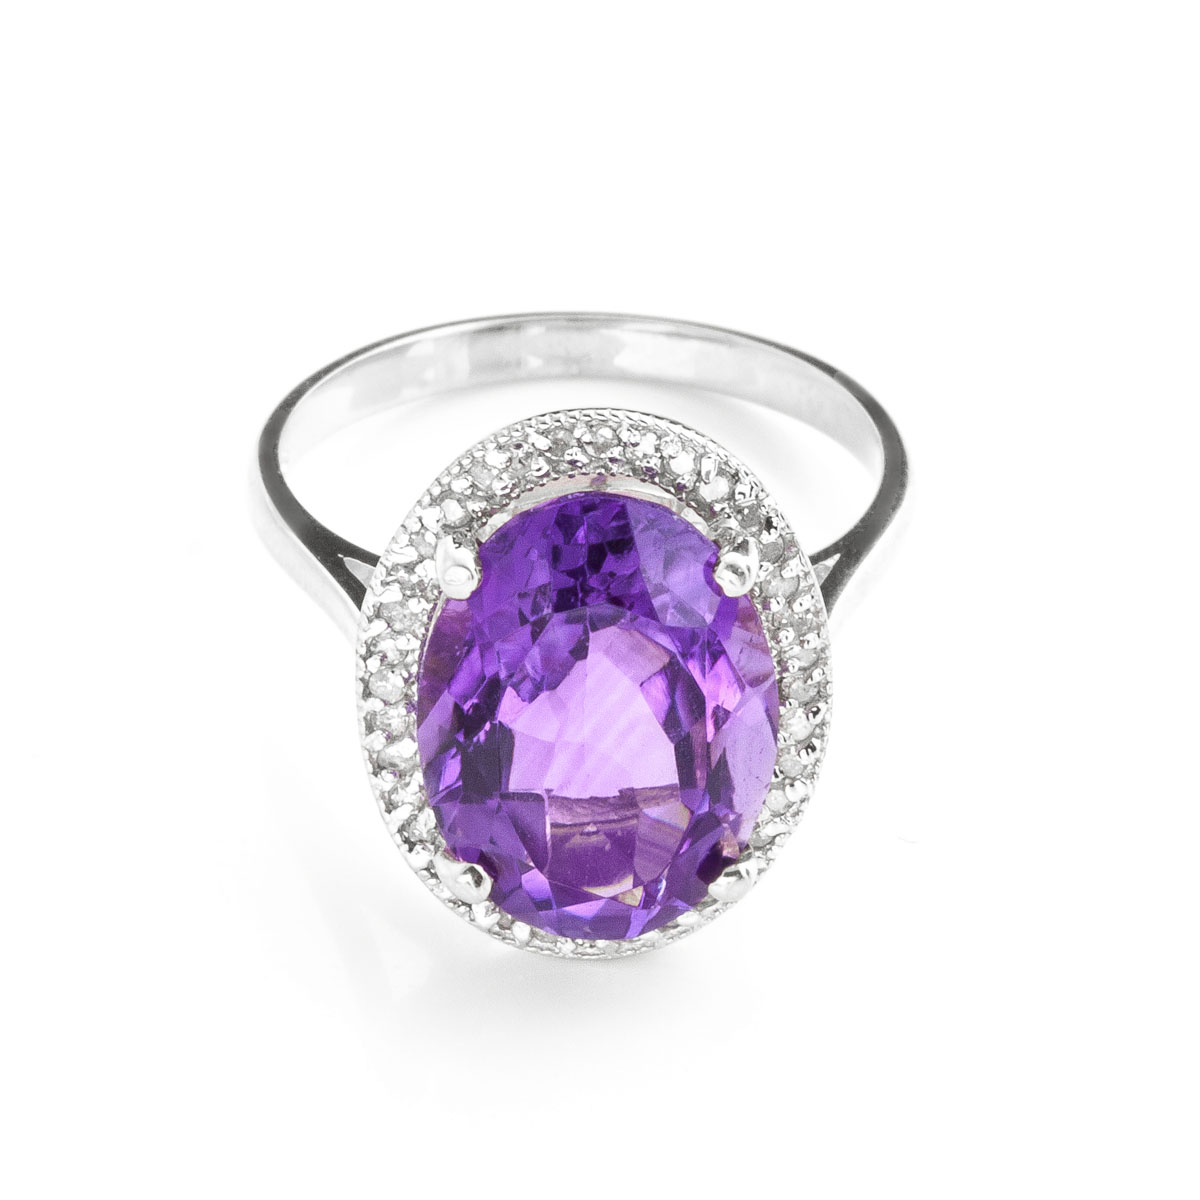 Amethyst Halo Ring 5.28 ctw in 9ct White Gold